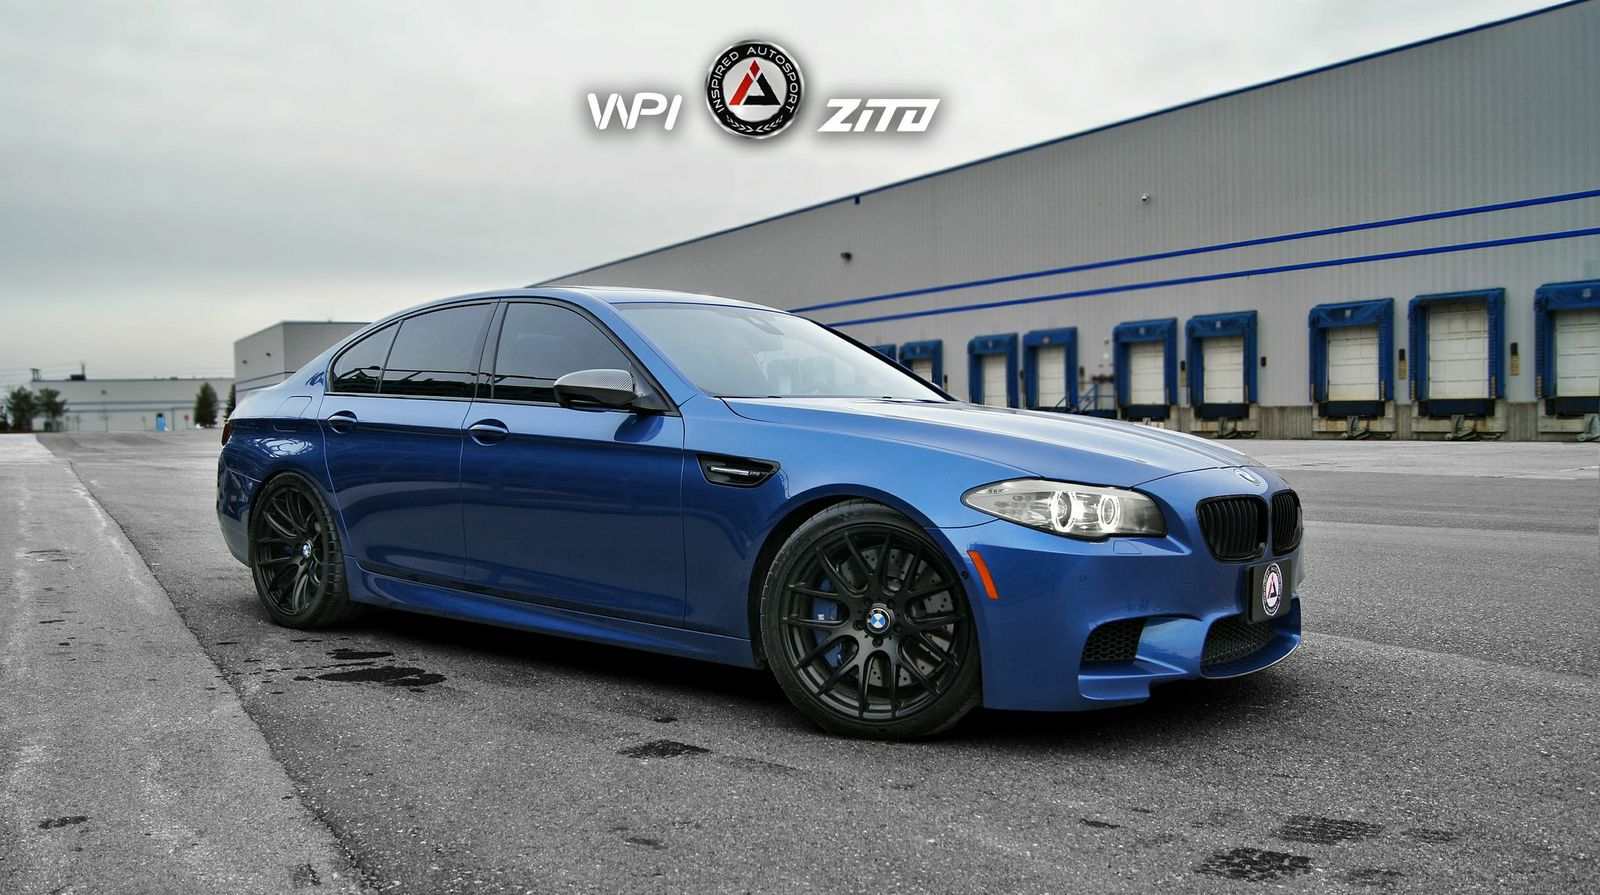 Zito Wheels // BMW M5 F10